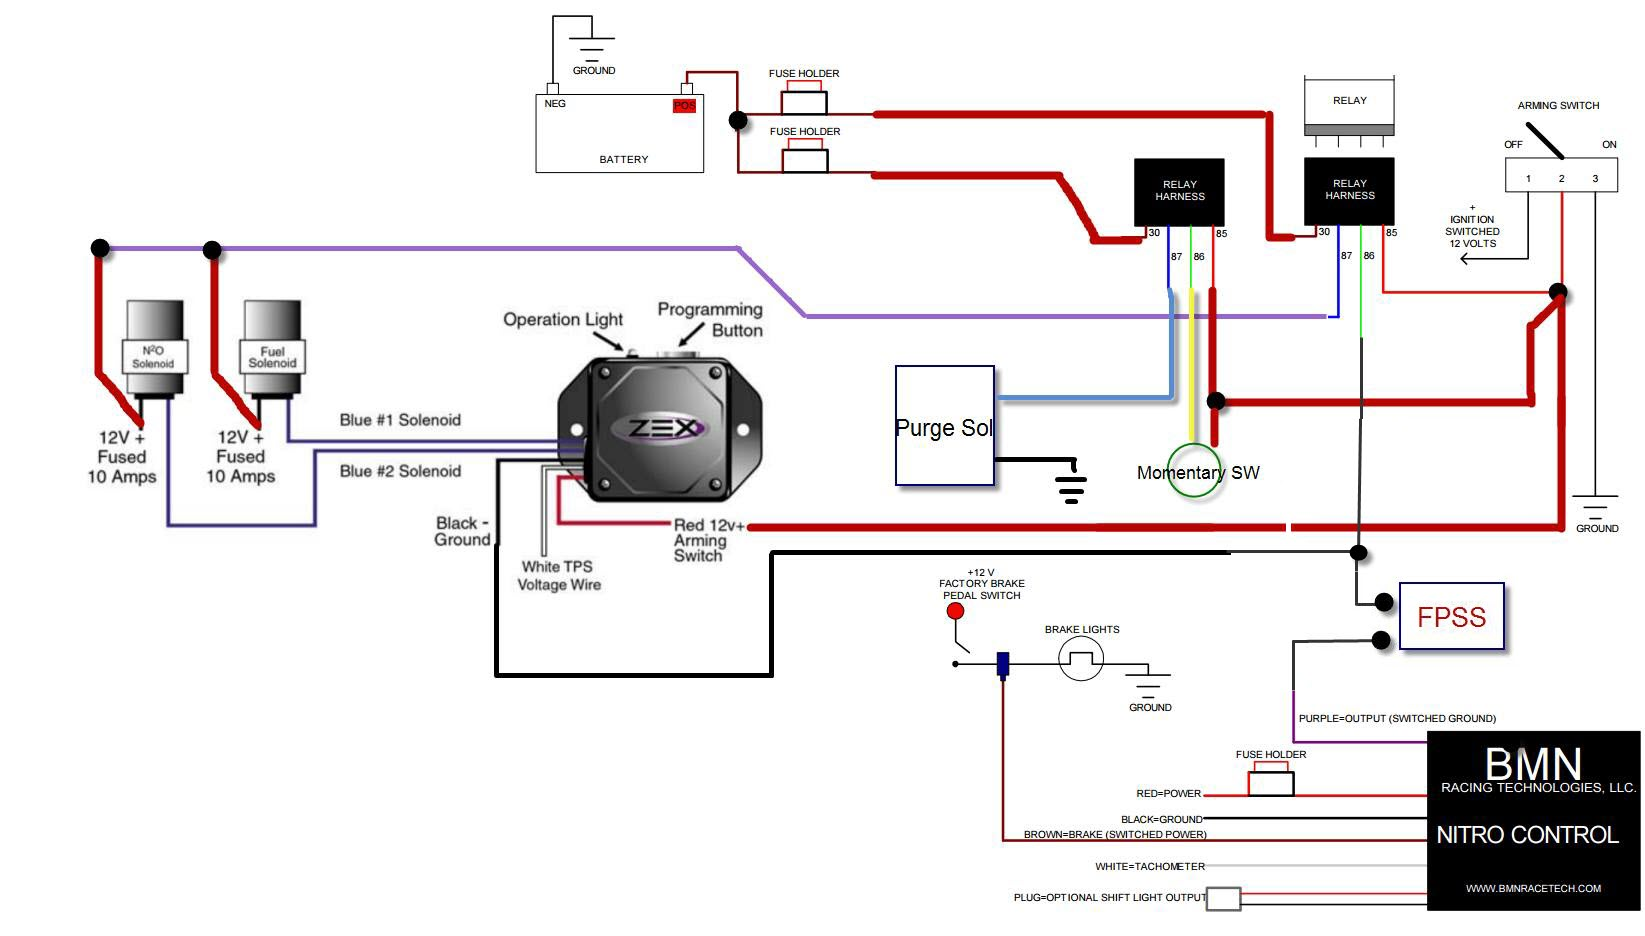 nitrous wiring diagram with purge 3g network architecture solenoid circuit maker